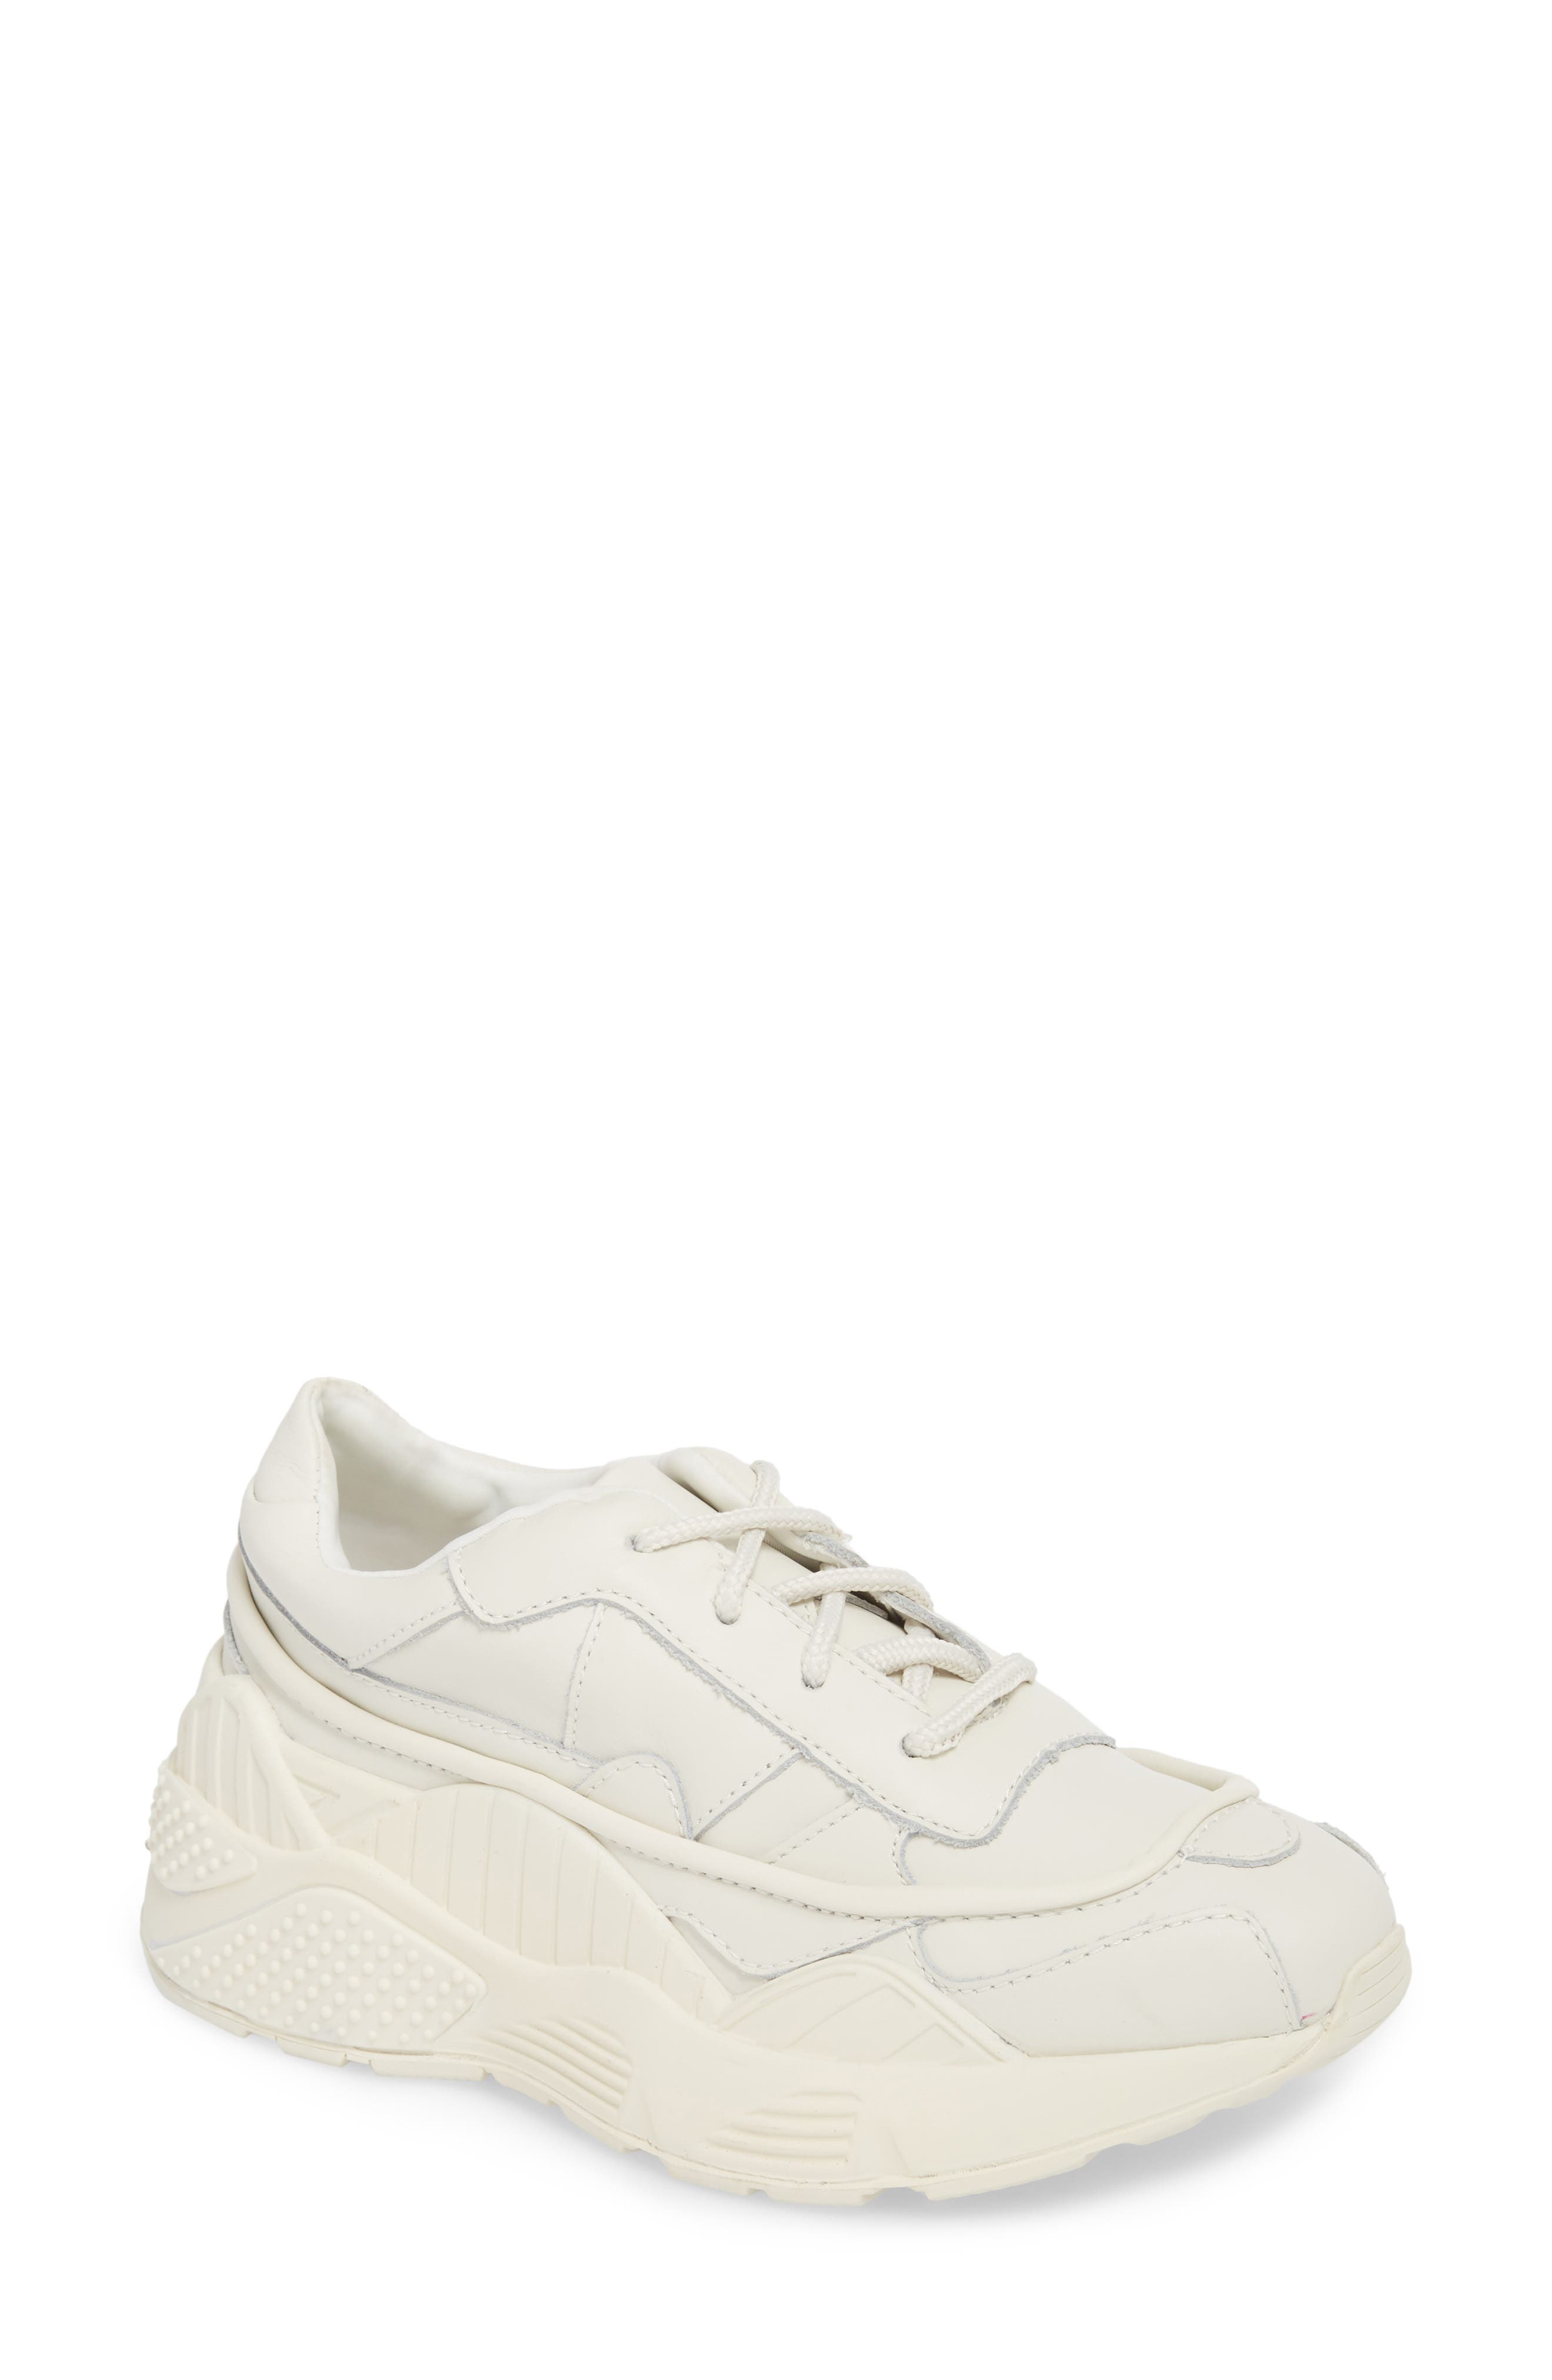 HMDI Platform Sneaker,                         Main,                         color, WHITE LEATHER